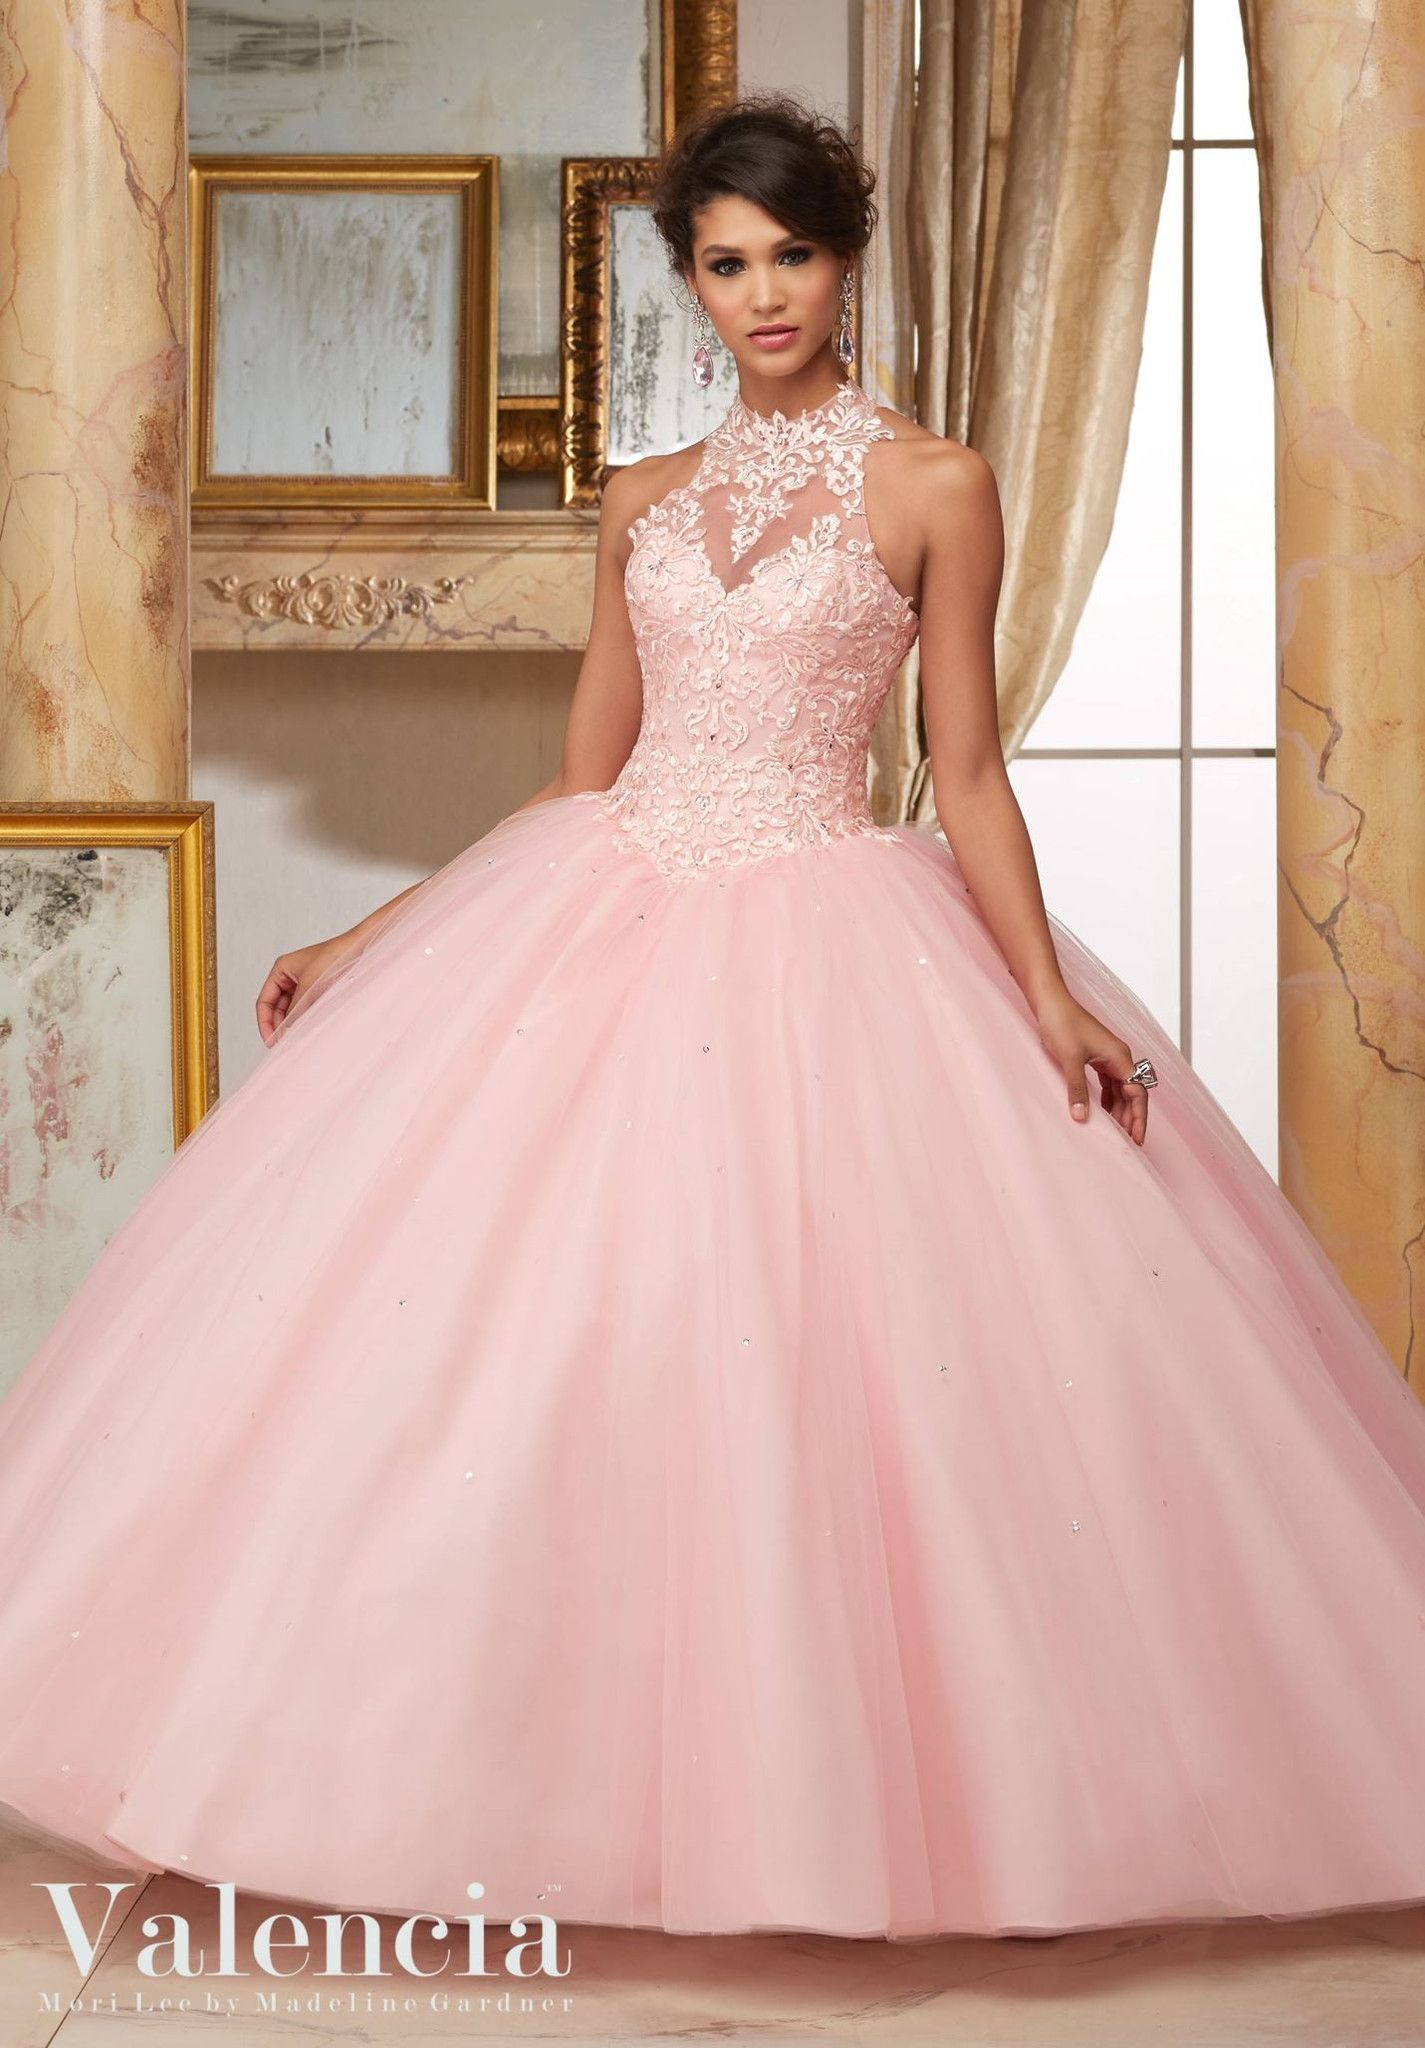 Mori Lee Valencia Quinceanera Dress 60004 | Quinceañera, Vestido de ...